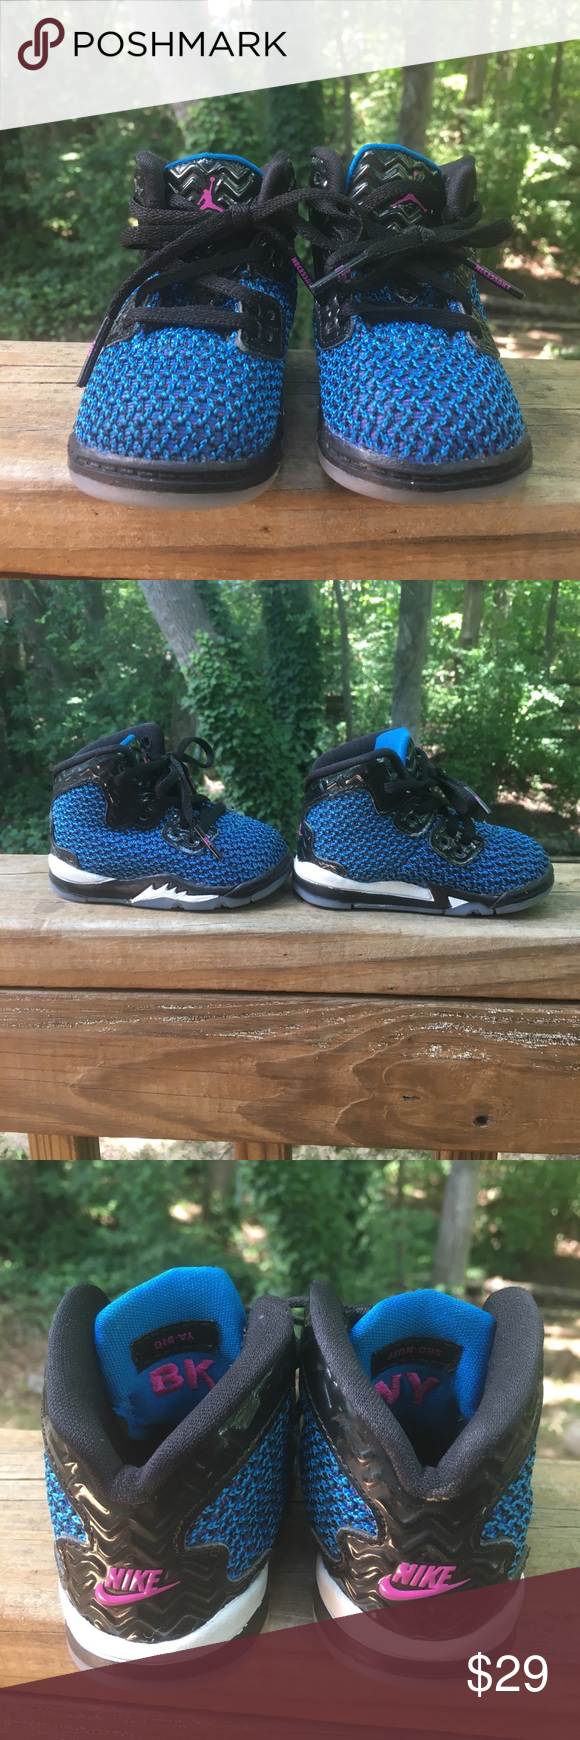 size 40 dec03 8b0e3 Toddler size 4 air Jordan spike 40 sneakers. Blue, purple and black. Gently  used. Bundle and save! Nike Shoes Sneakers